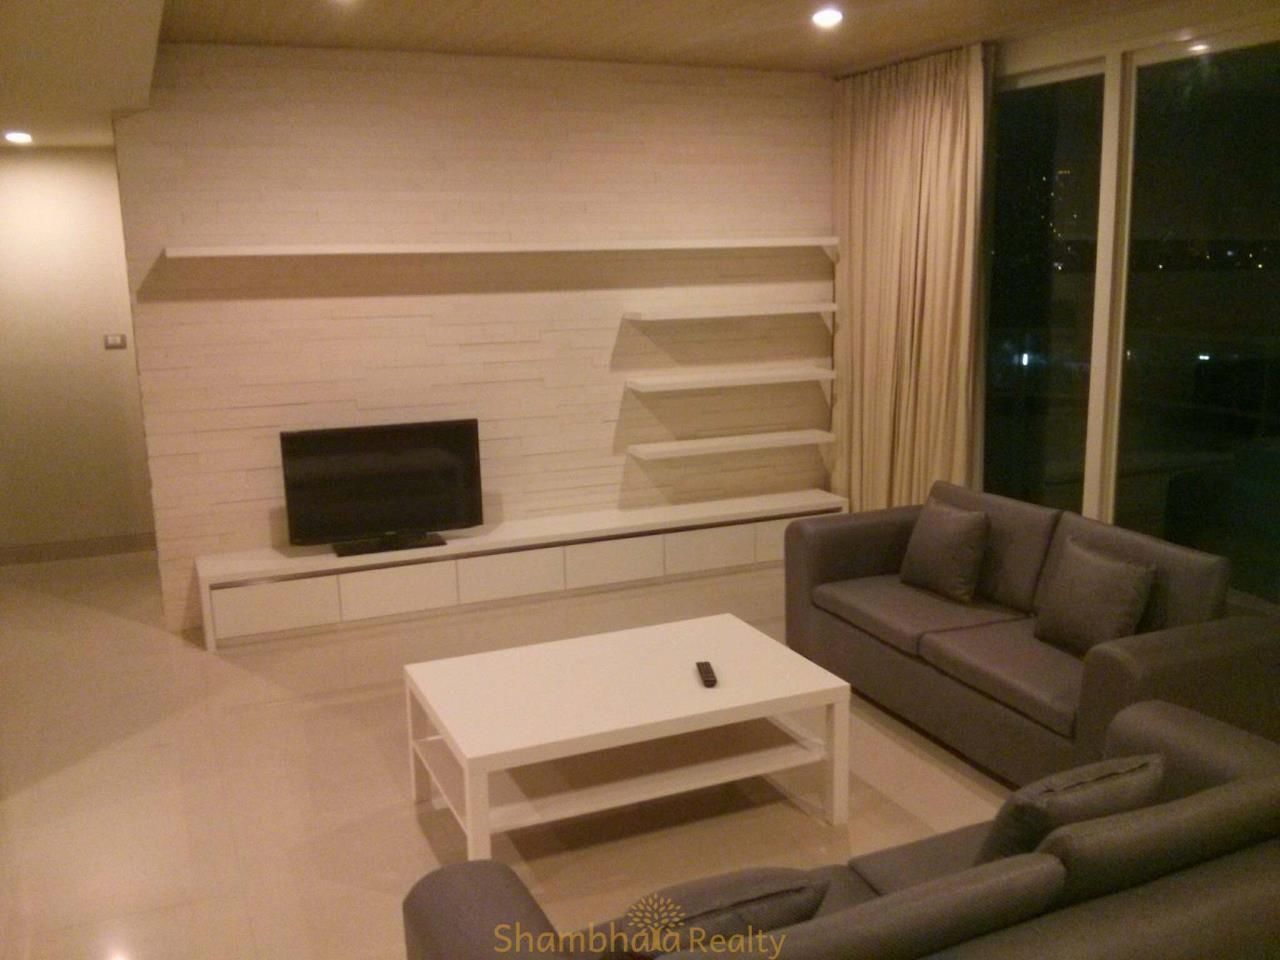 Shambhala Realty Agency's Watermark Chaophraya Condominium Condominium for Sale in Charoen Nakorn Rd 7